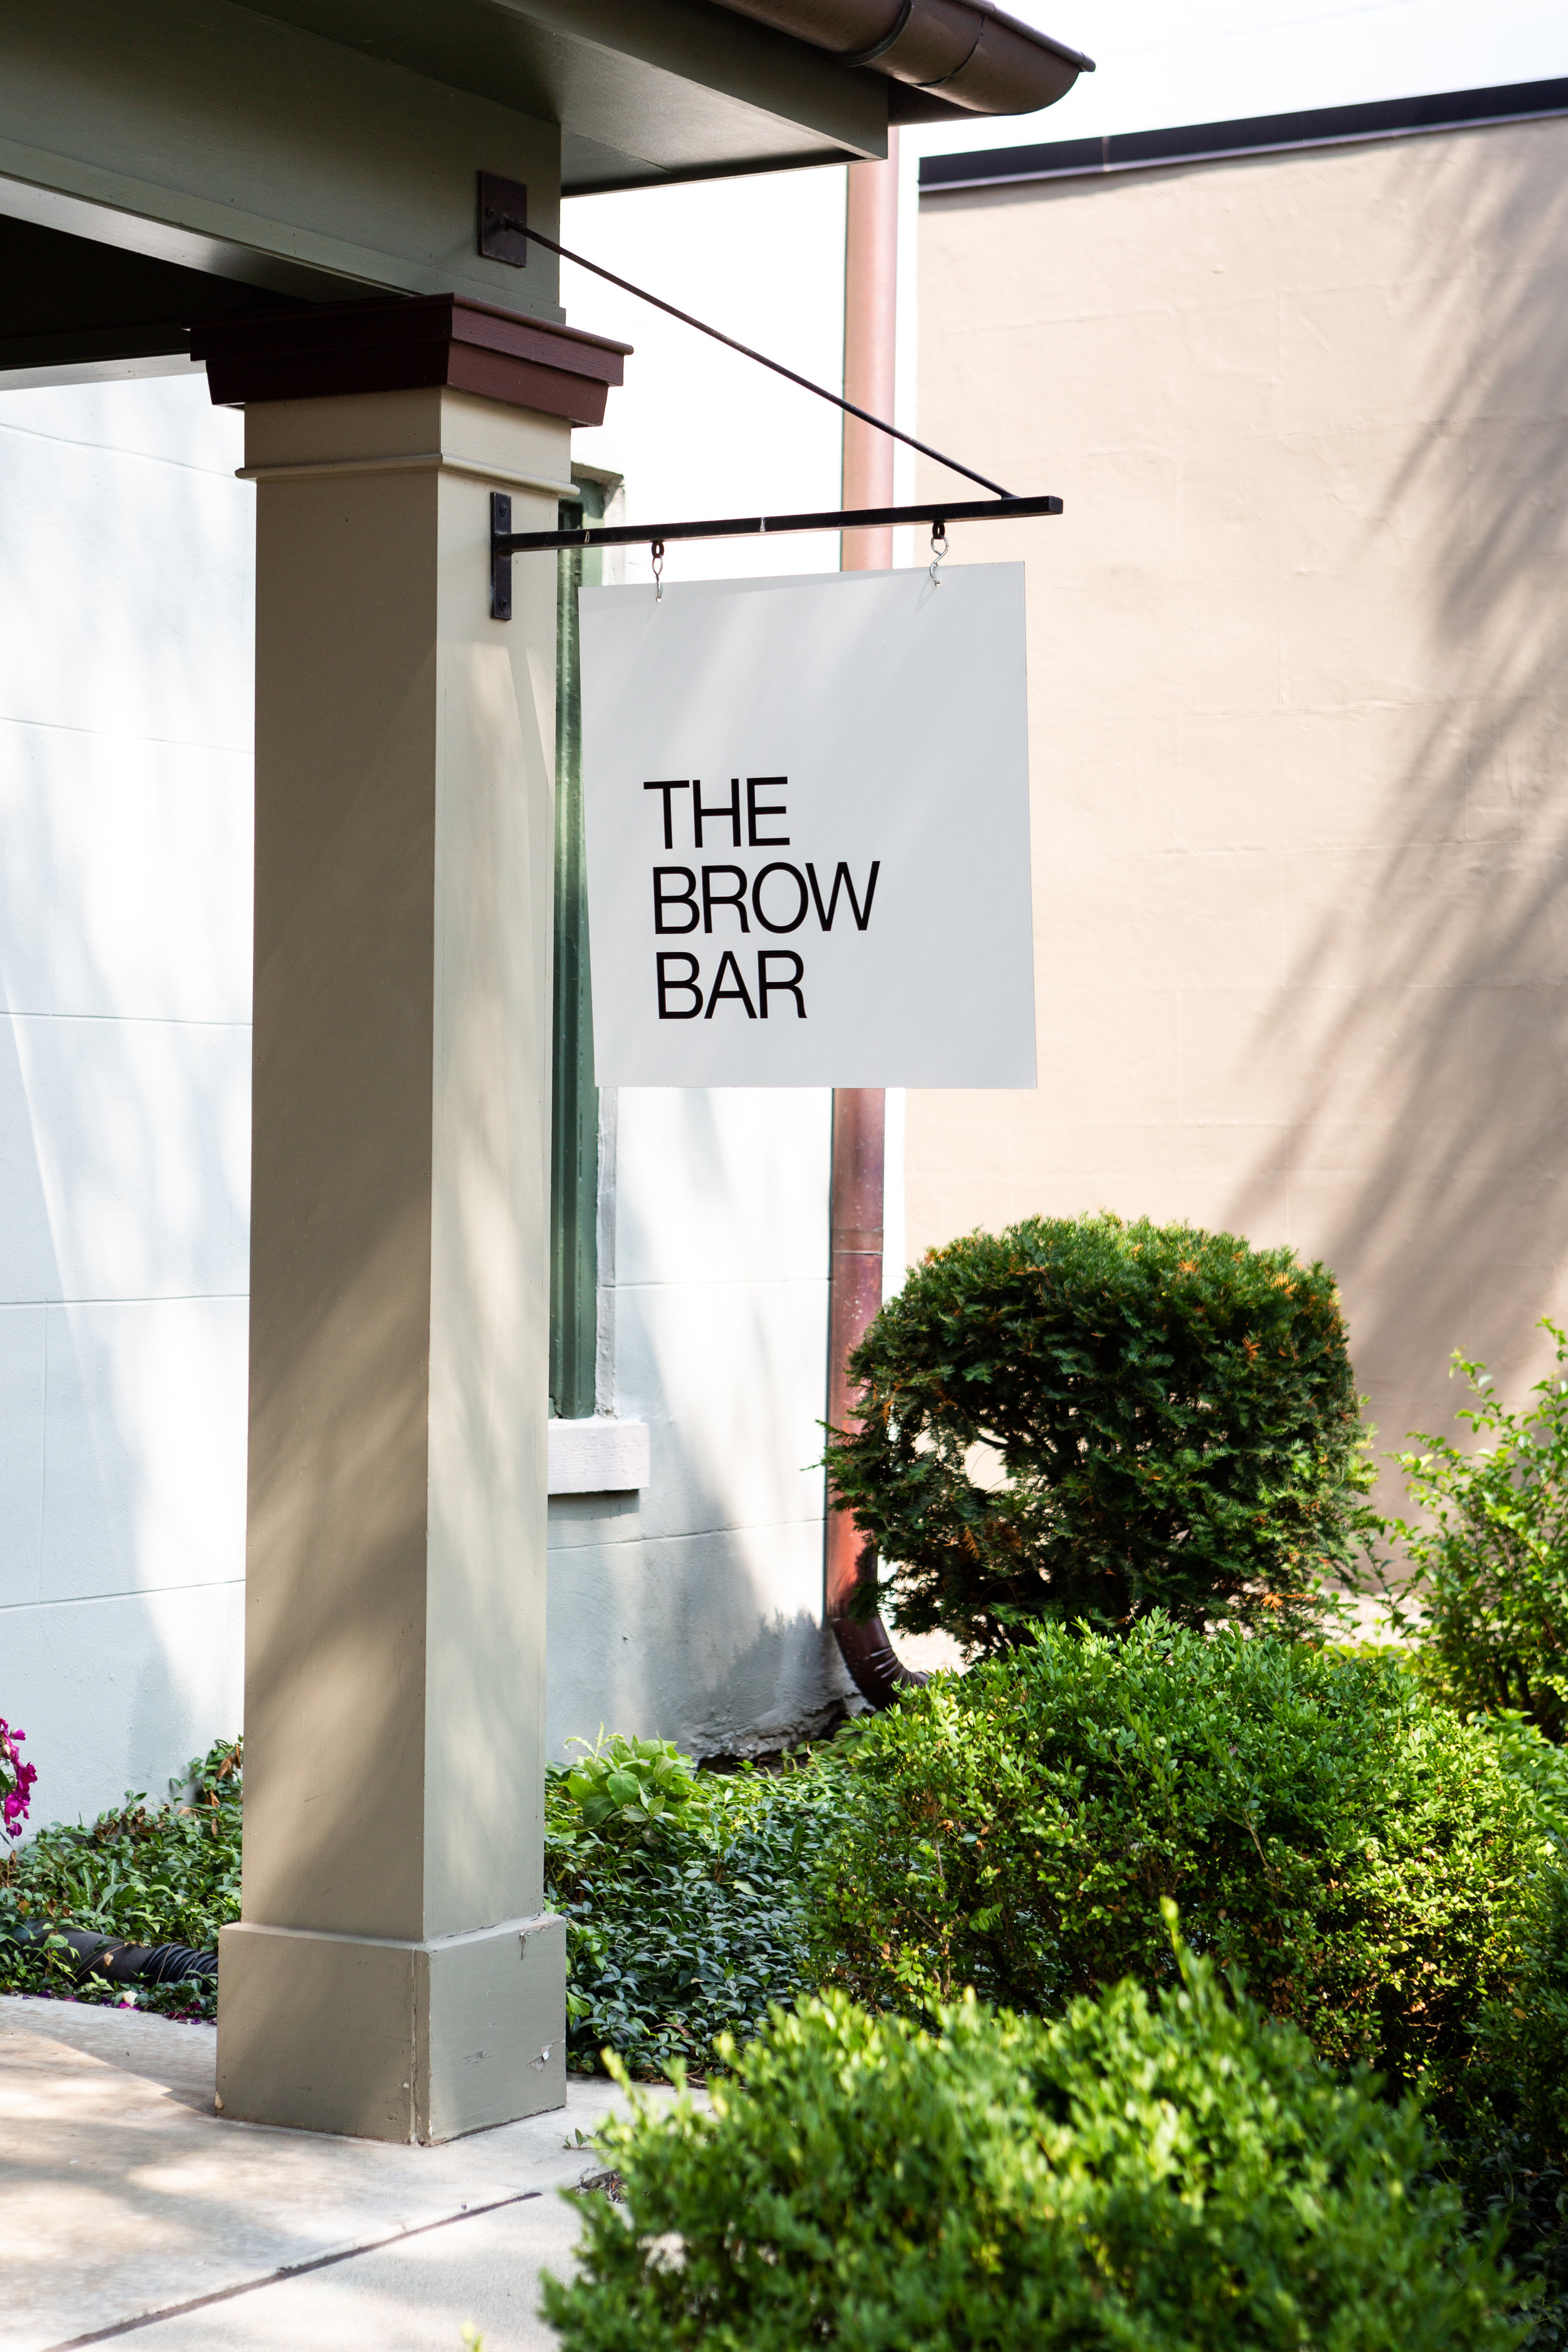 Can't make it to The Brow Bar? - Get an online brow consultation from SARAH